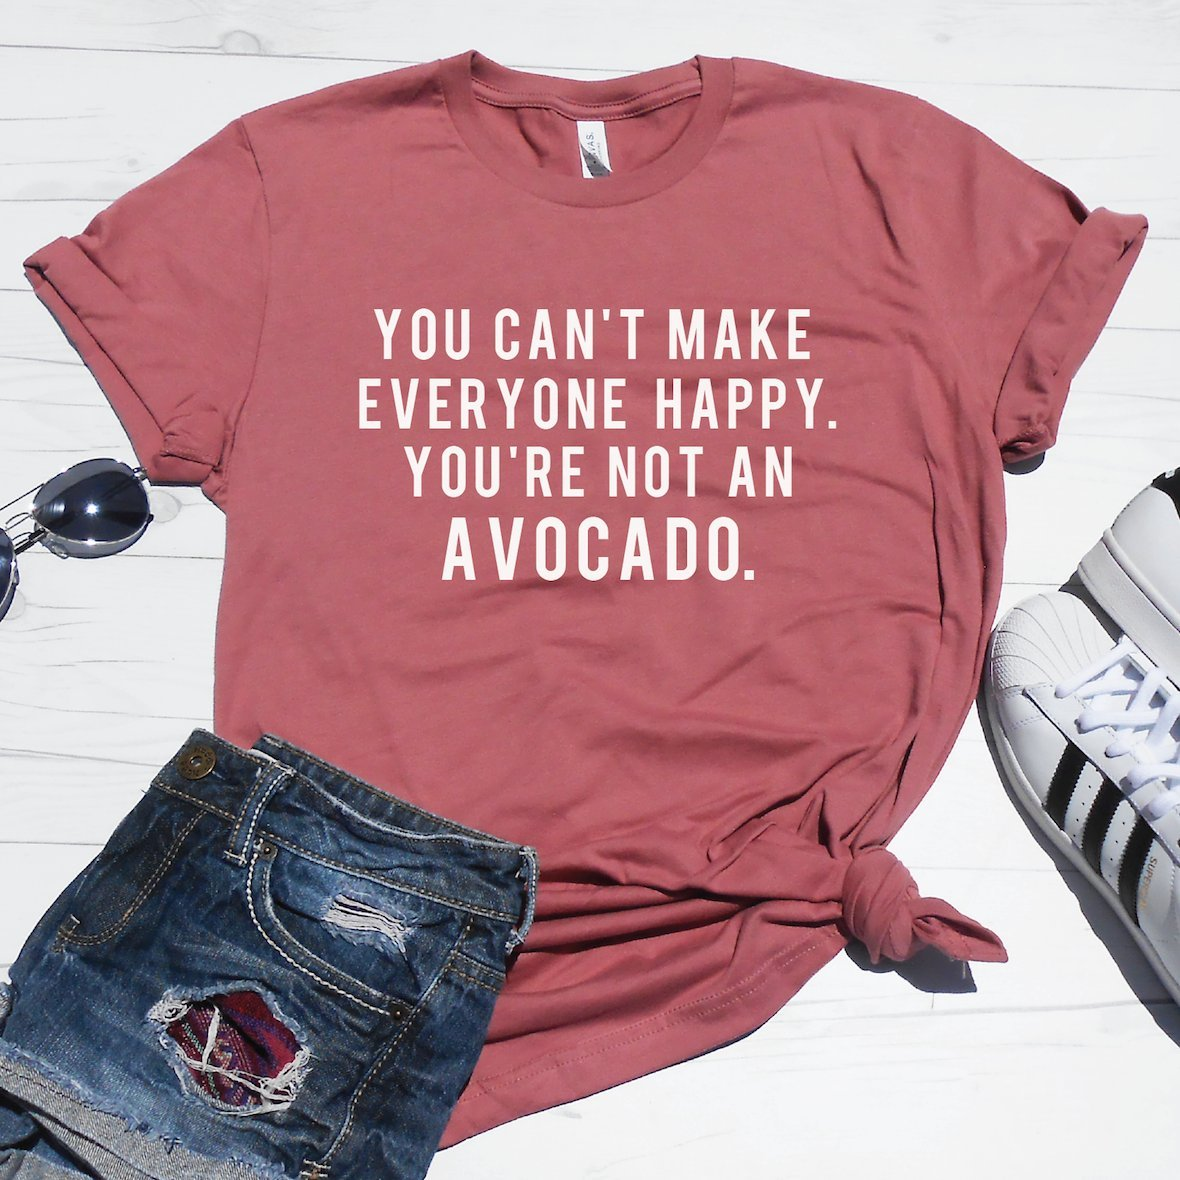 bed751bf You Can't Make Everyone Happy You're Not An Avocado T-Shirt by Strong Girl  Clothing. Super soft, unisex fit t-shirt. Super cute worn with sleeves  rolled up, ...